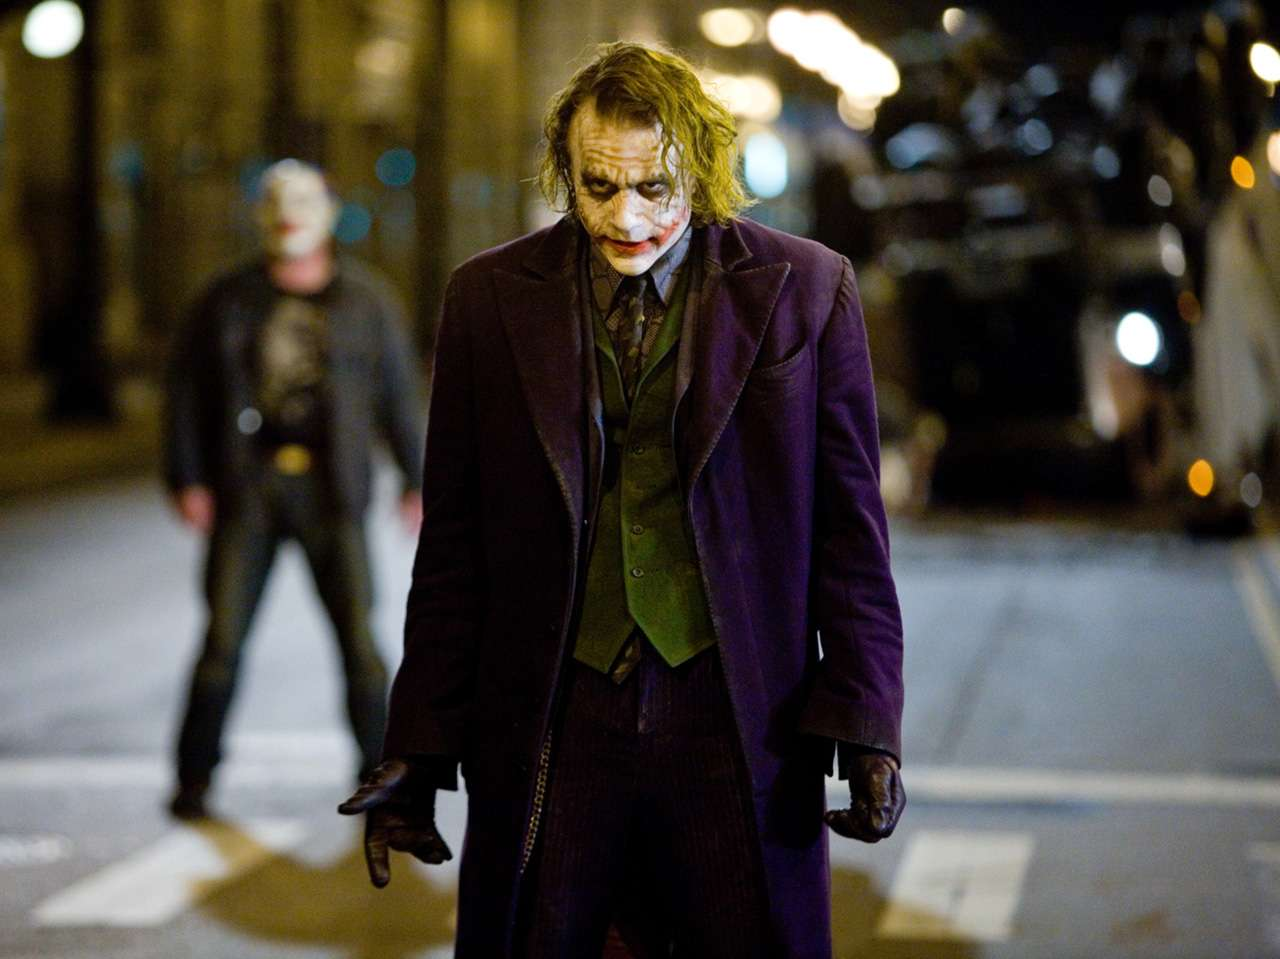 Estrenos póstumos: actores muertos antes de estrenar - Heath Ledger, 'Dark Knight' Foto: Warner Bros. Pictures